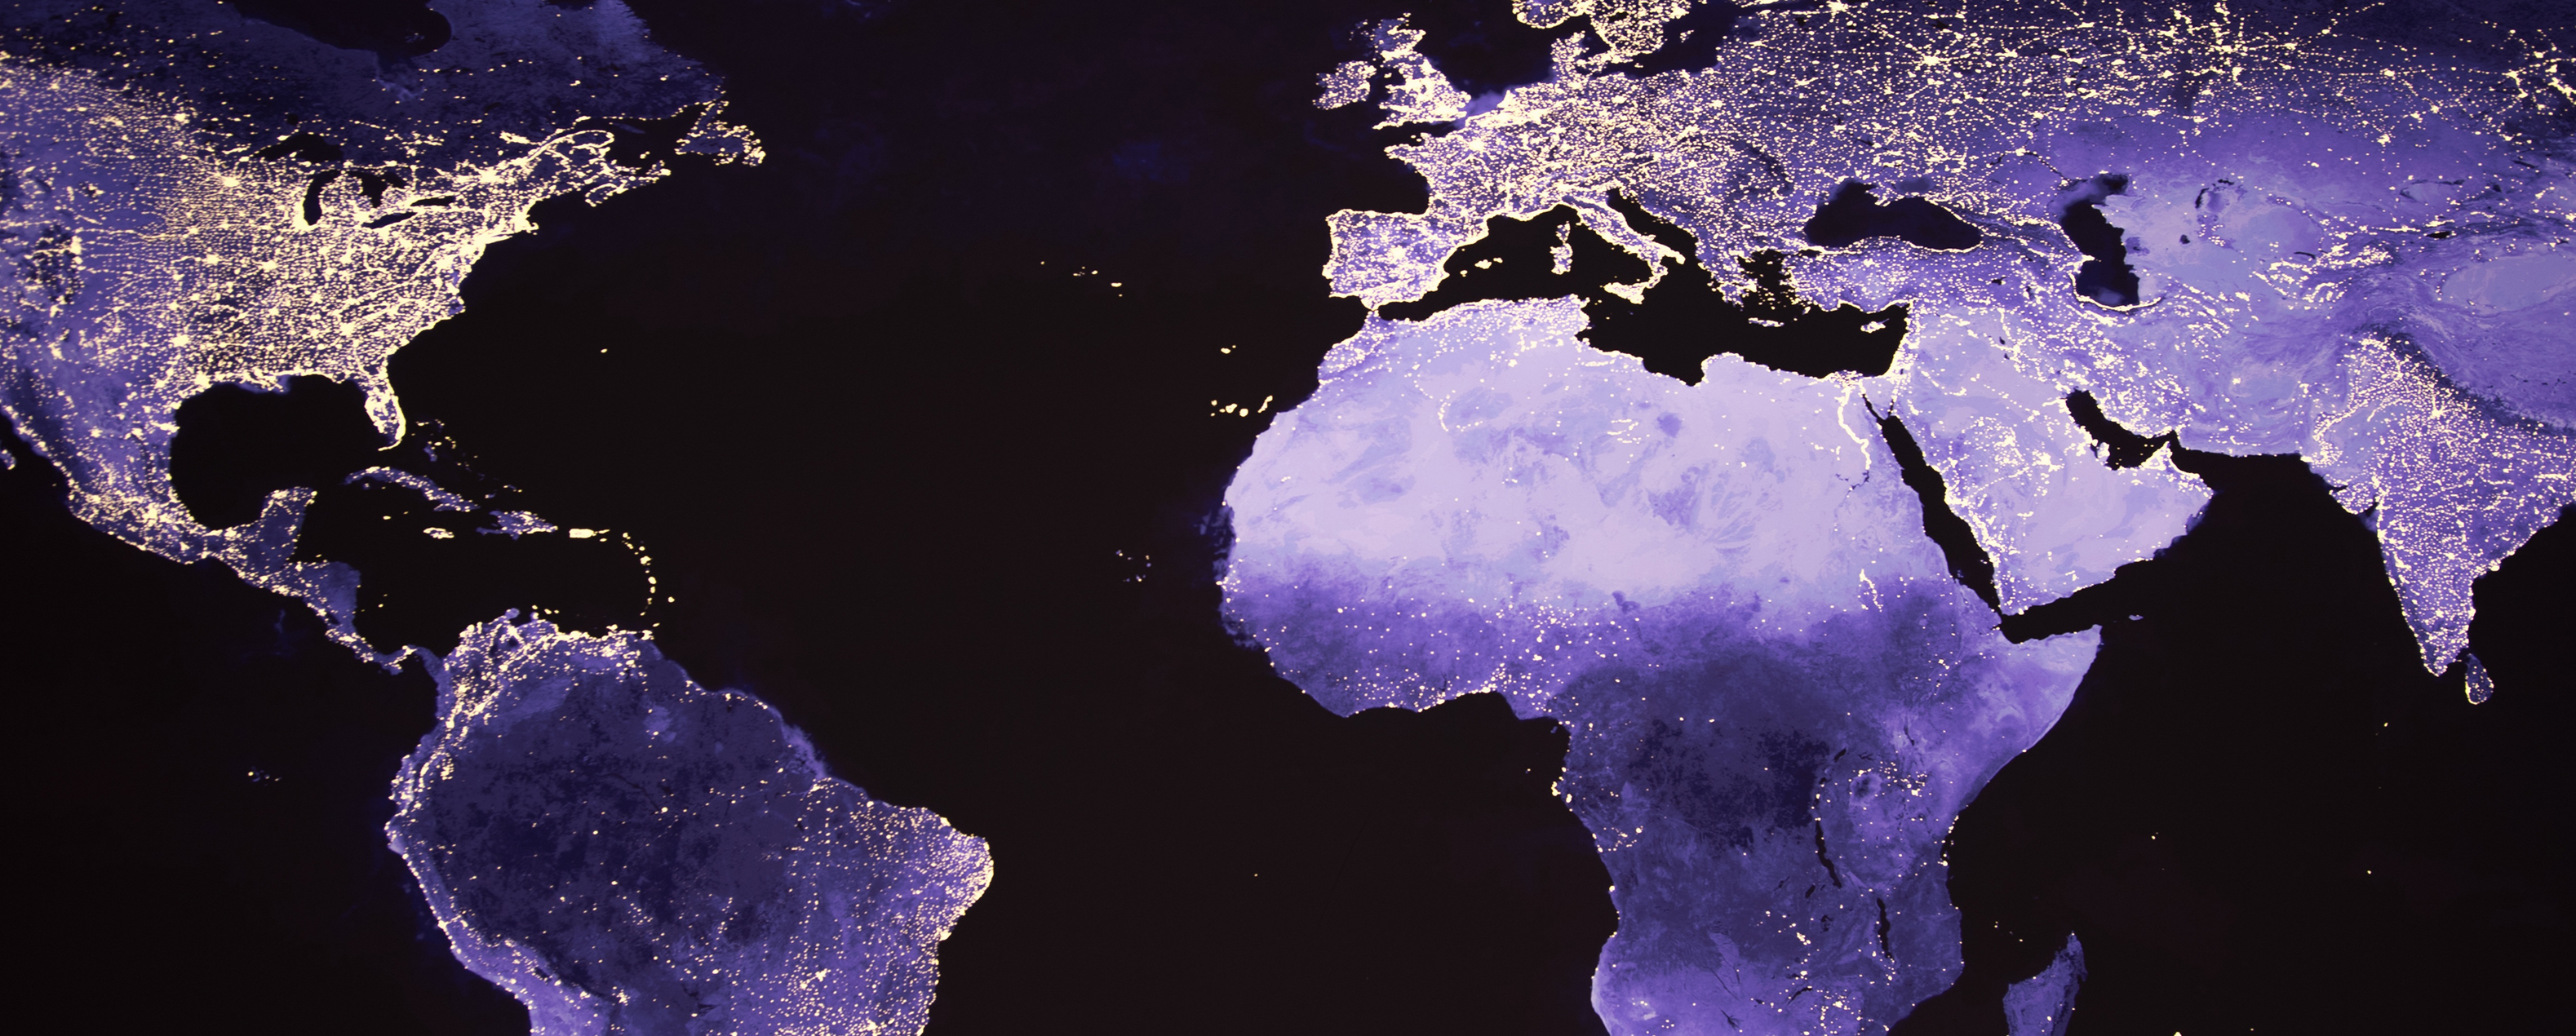 World map standing out in purple with glowing areas of land